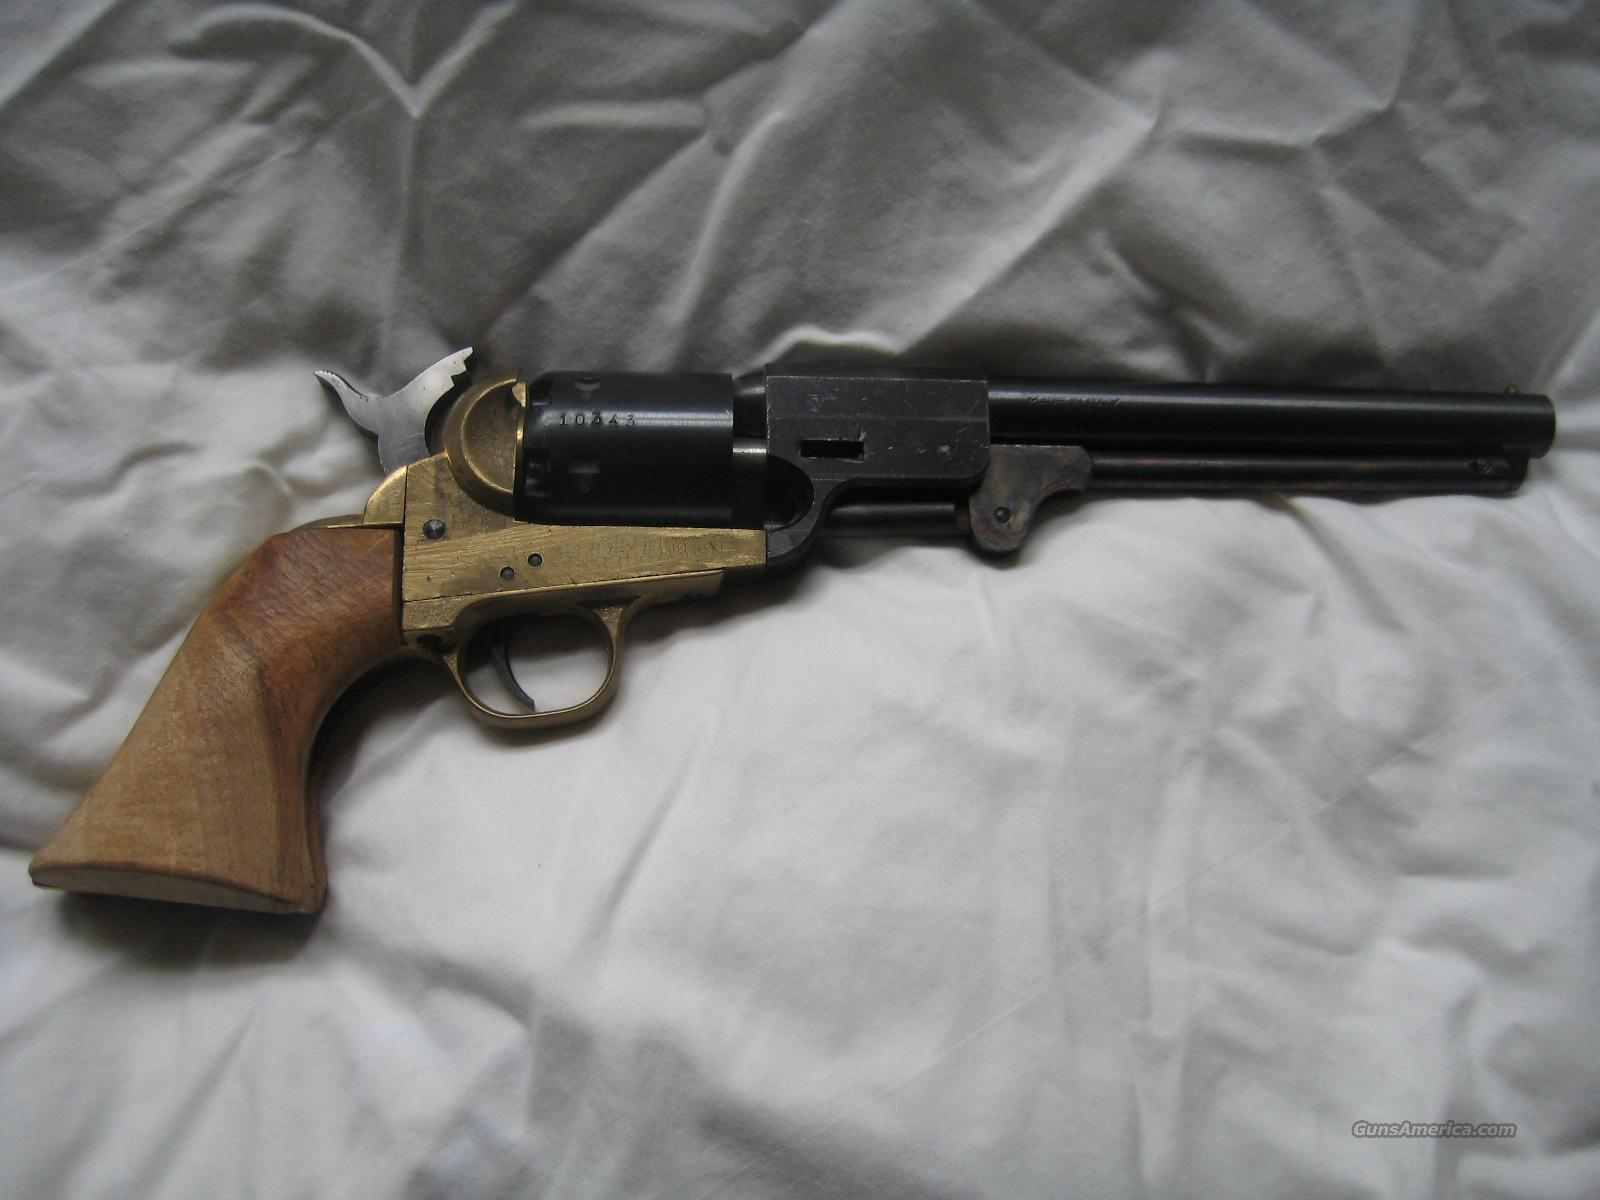 NAVY ARMS CO. MODEL 1851 .36 CAL. Colt Navy replica Black Powder Percussion Revolver  Guns > Pistols > Navy Arms Pistols